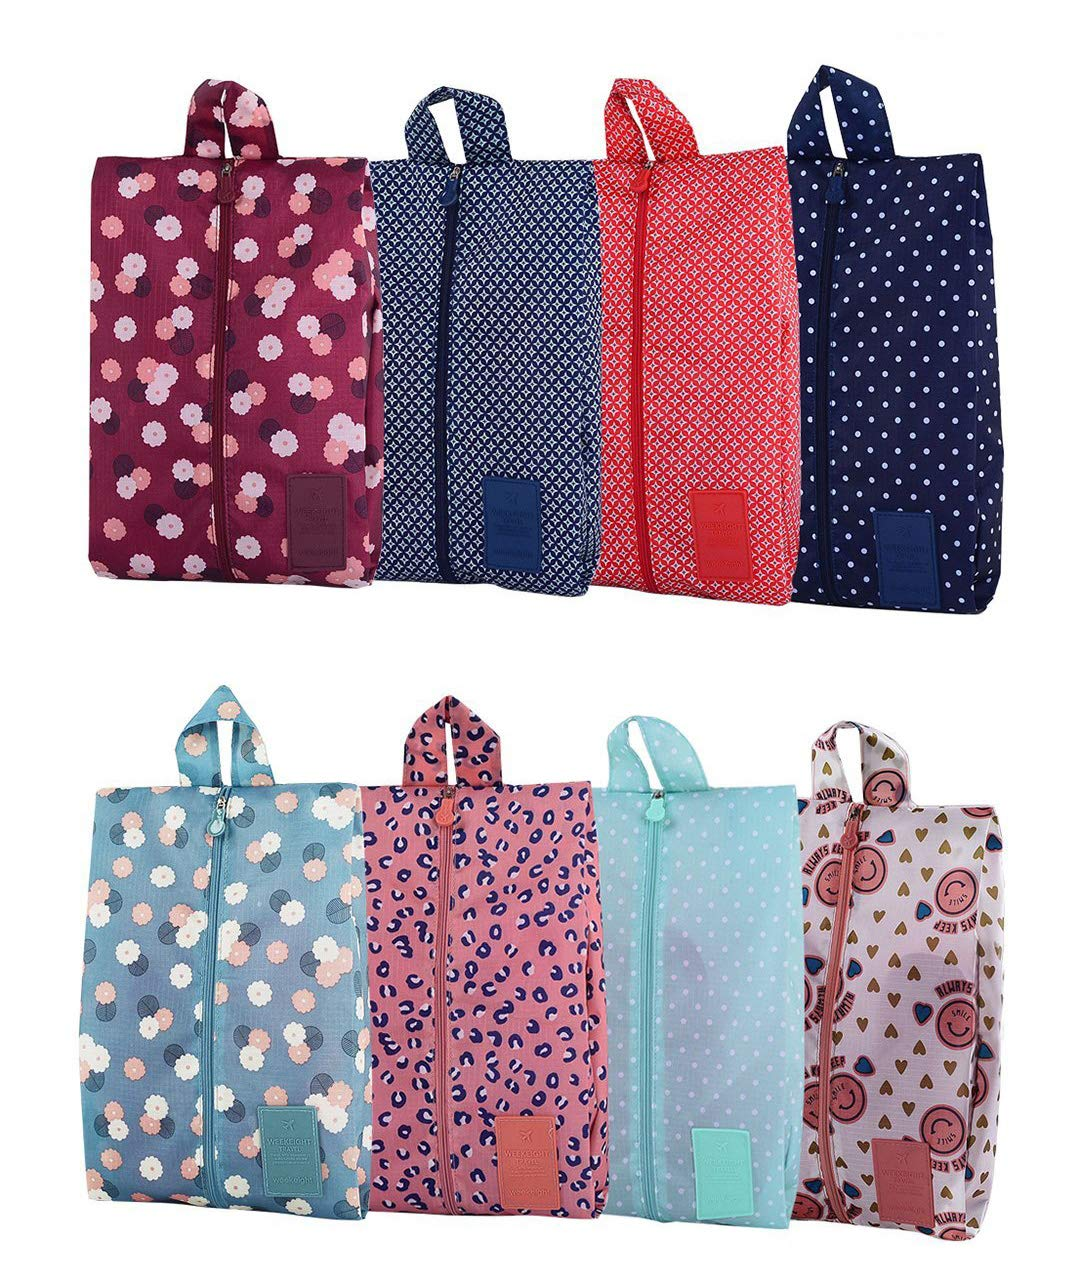 Travel Shoe Bags Portable Oxford Shoe Bags with Zipper Closure Waterproof Storage Organizer Bag for Makeup Bathing Clothes, 8 Pack by Xunlong